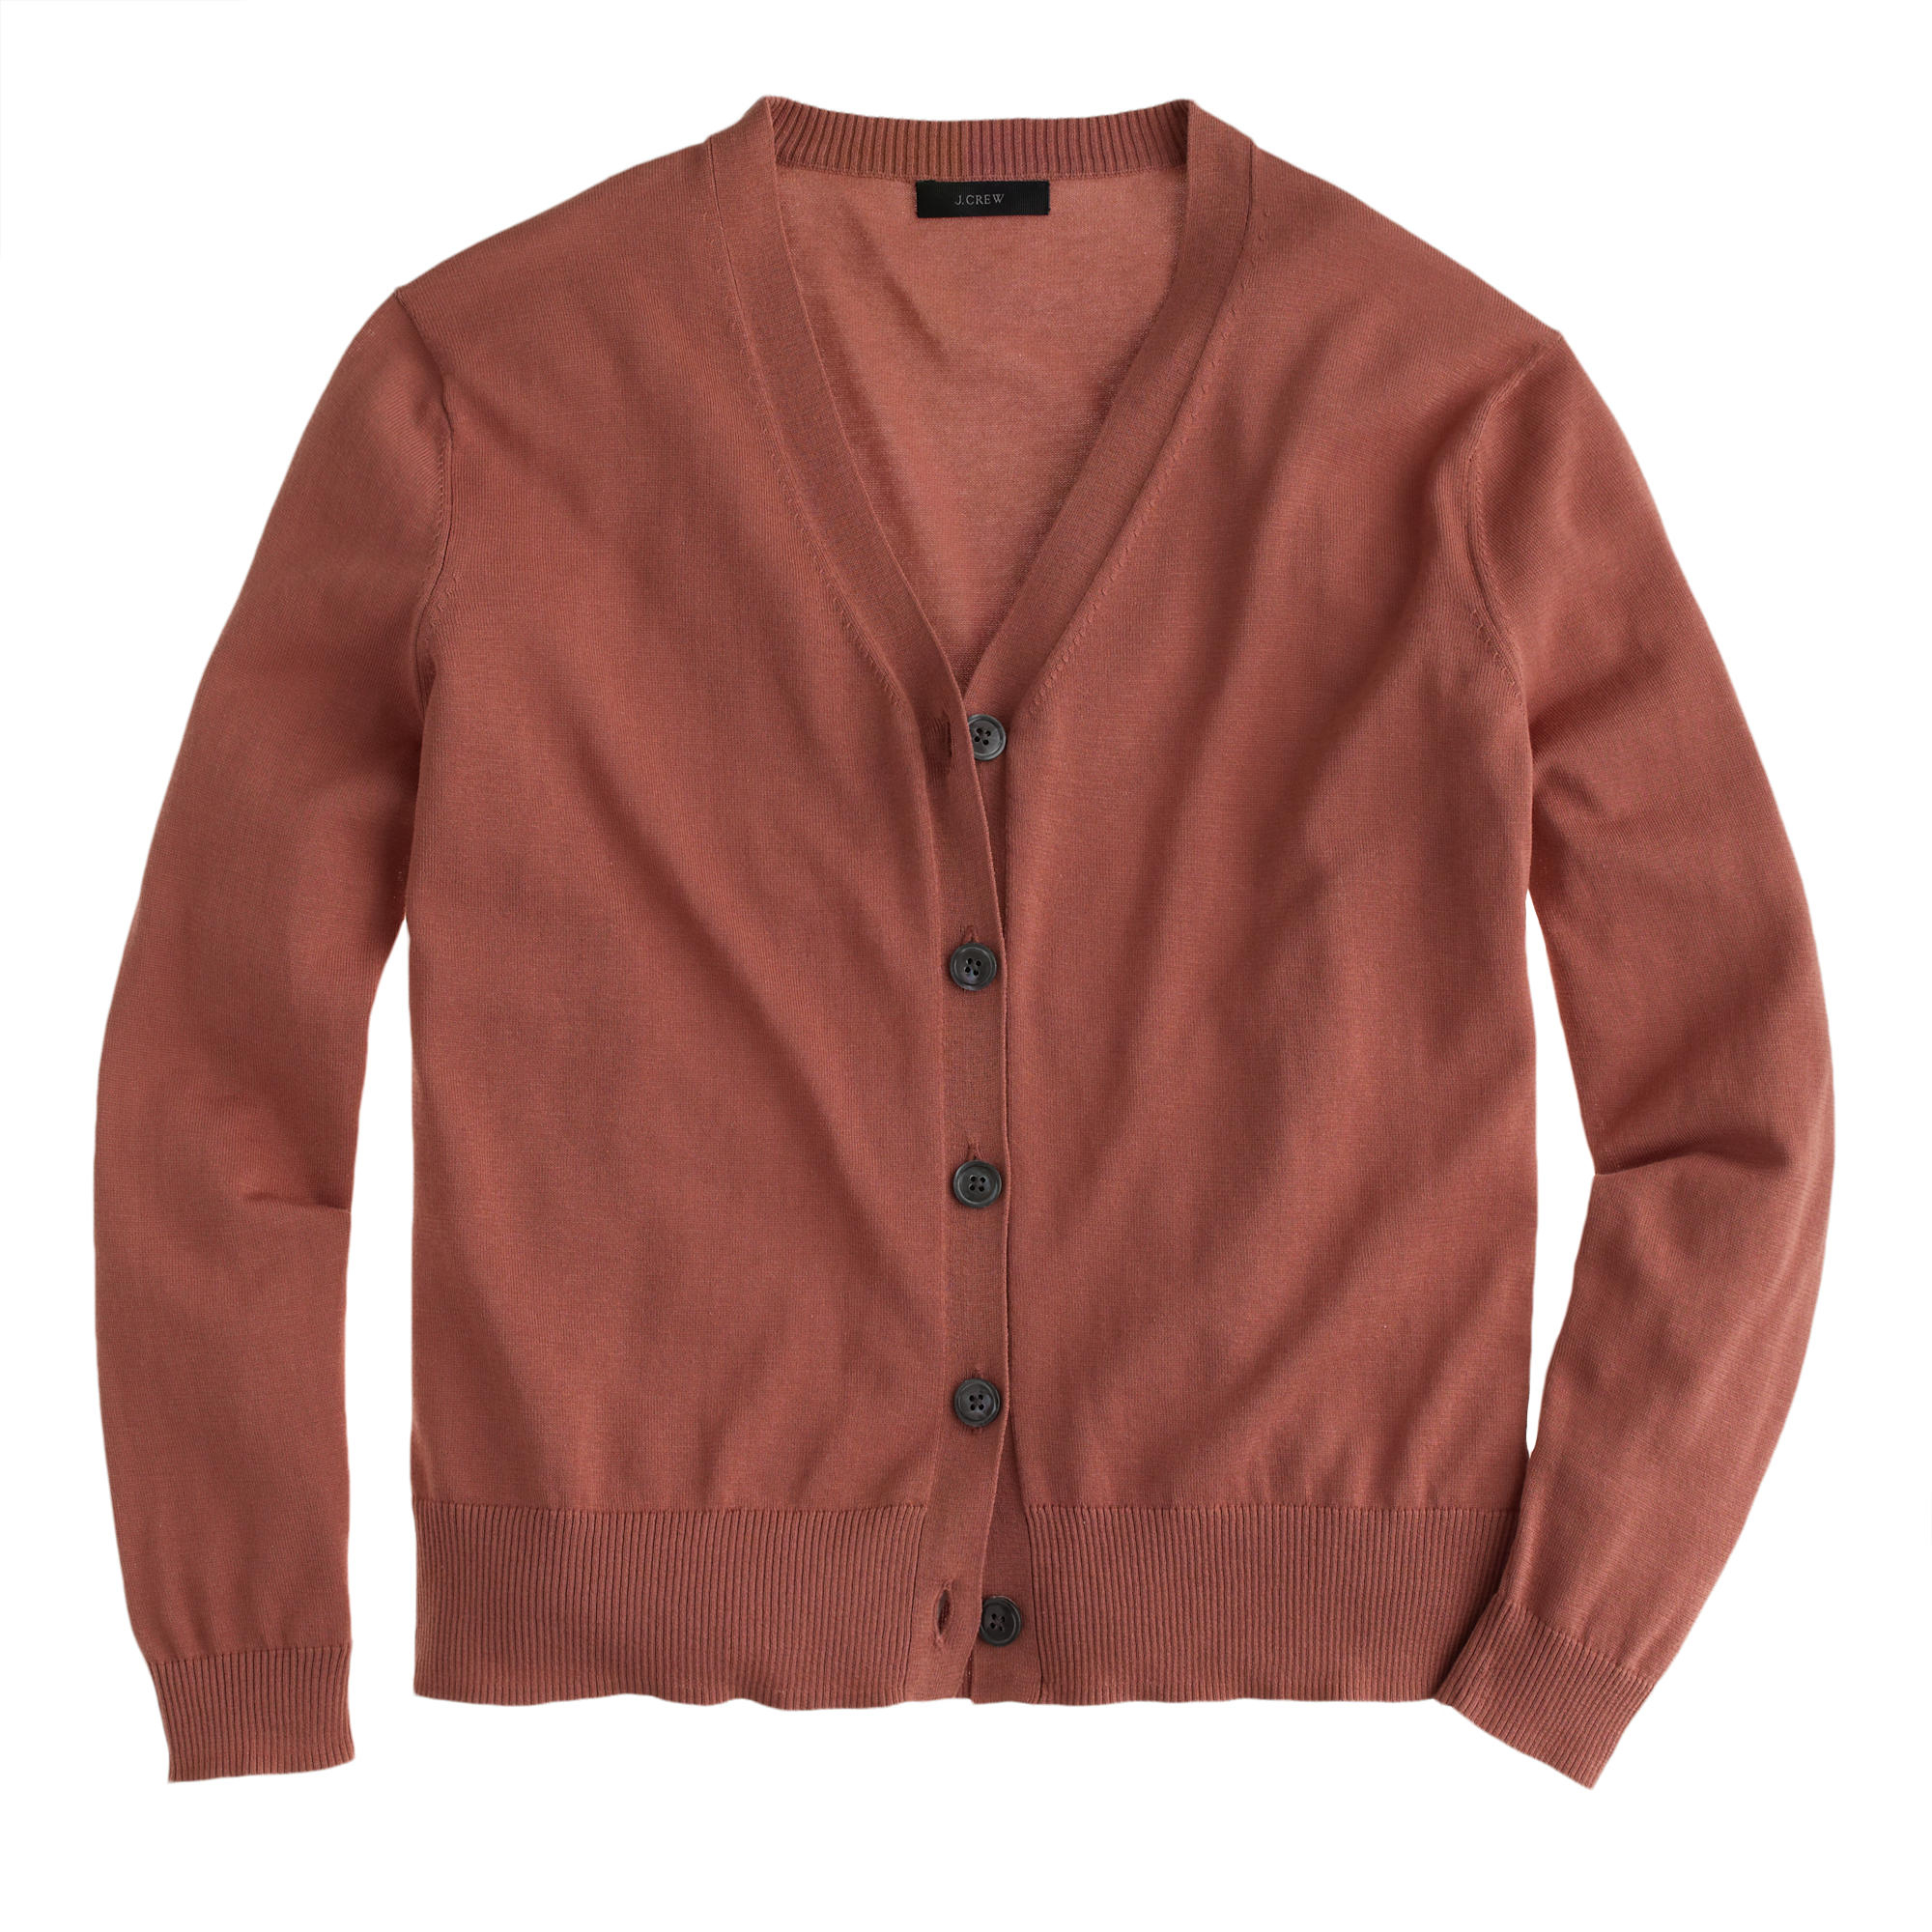 J.crew Petite Summerweight Cotton V-neck Cardigan Sweater in Brown ...